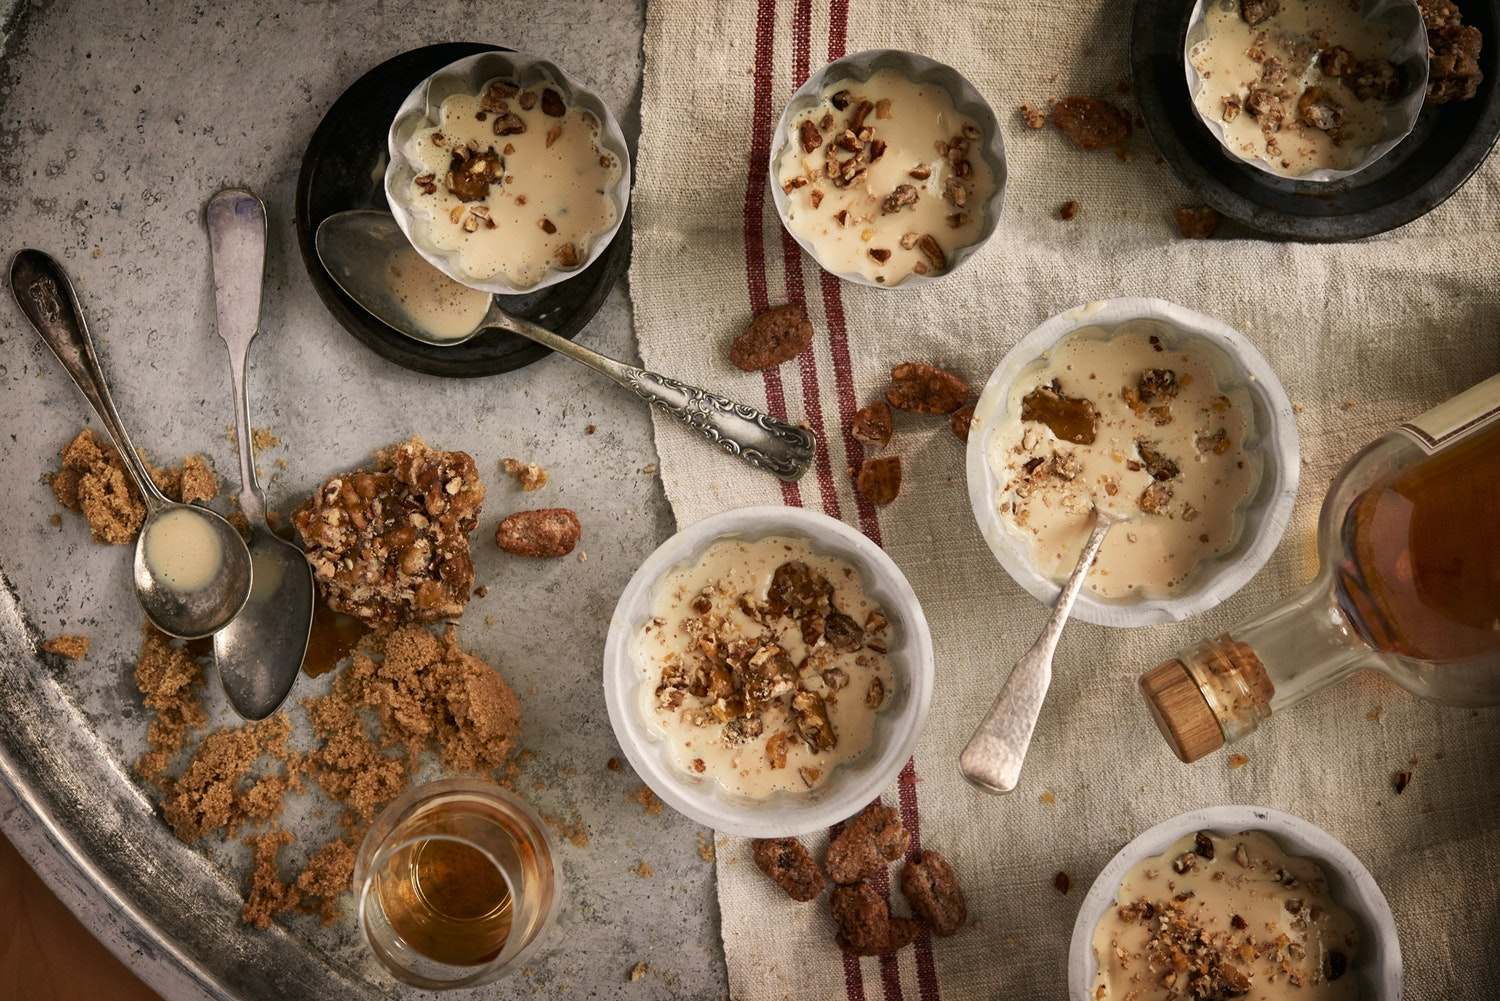 Clamentine's maple bourbon ice cream with salted candied pecans